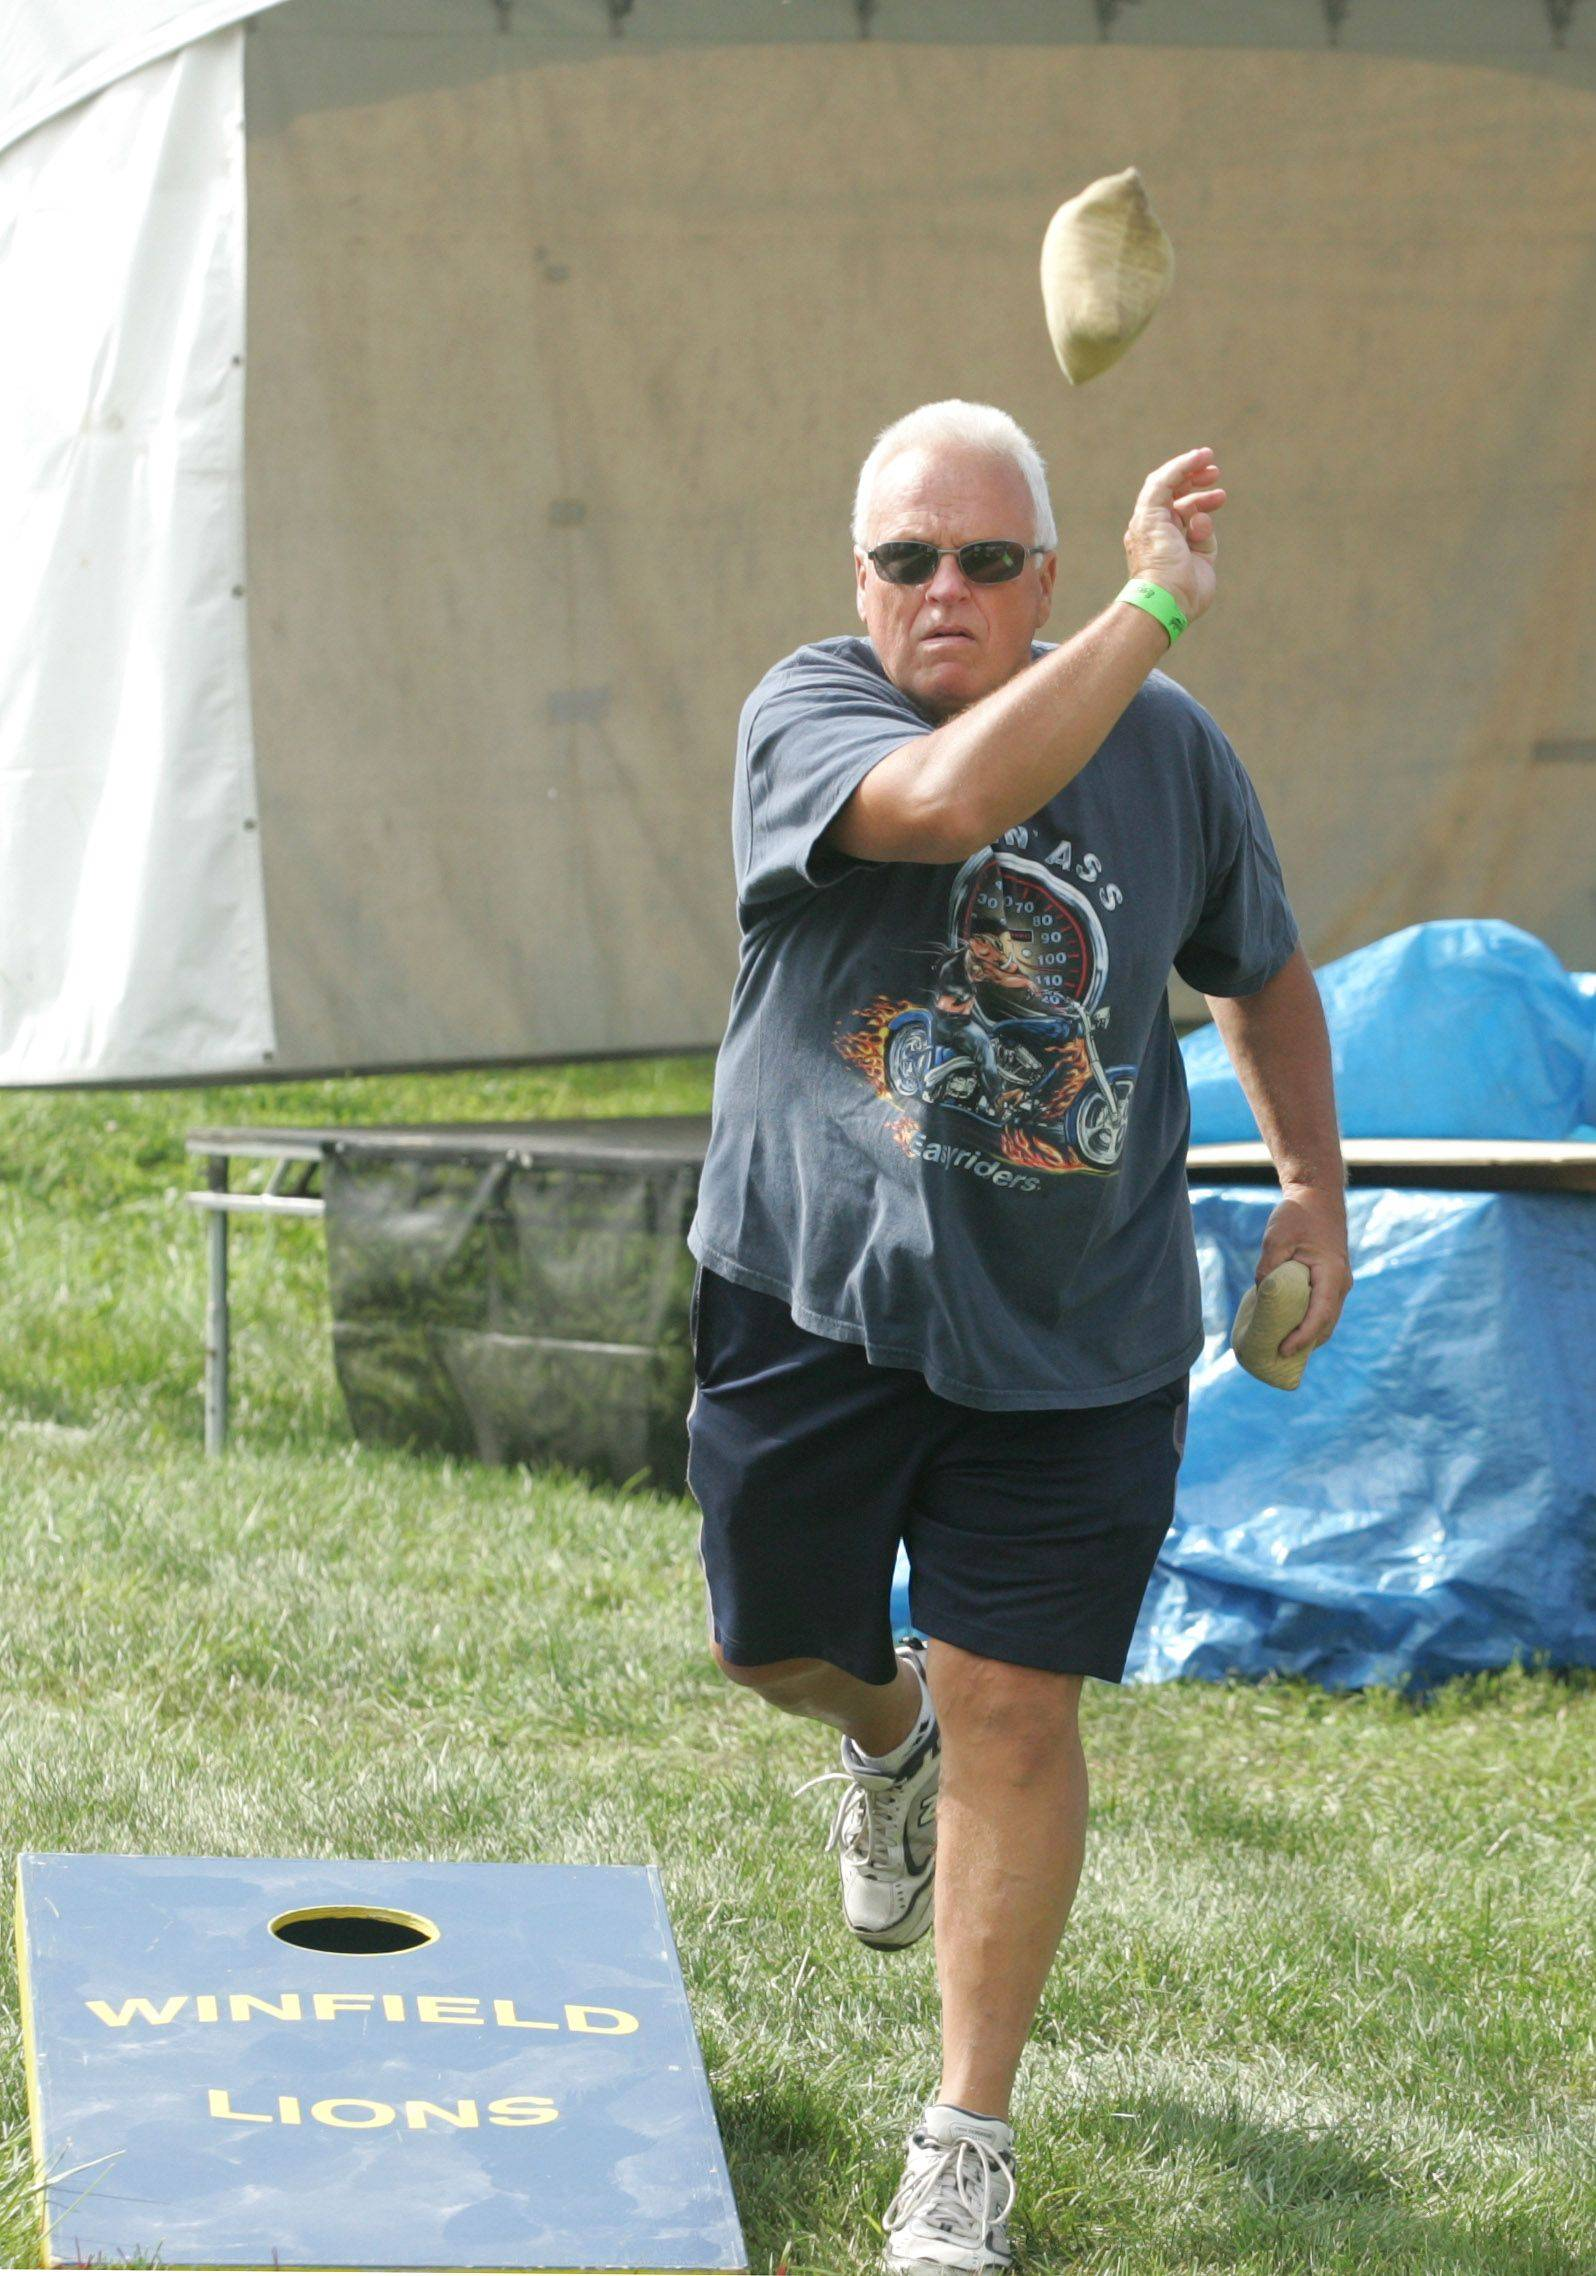 Chuck Hahn of Winfield participates in the fifth annual cornhole tournament Saturday at Winfield�s Good Old Days festival.